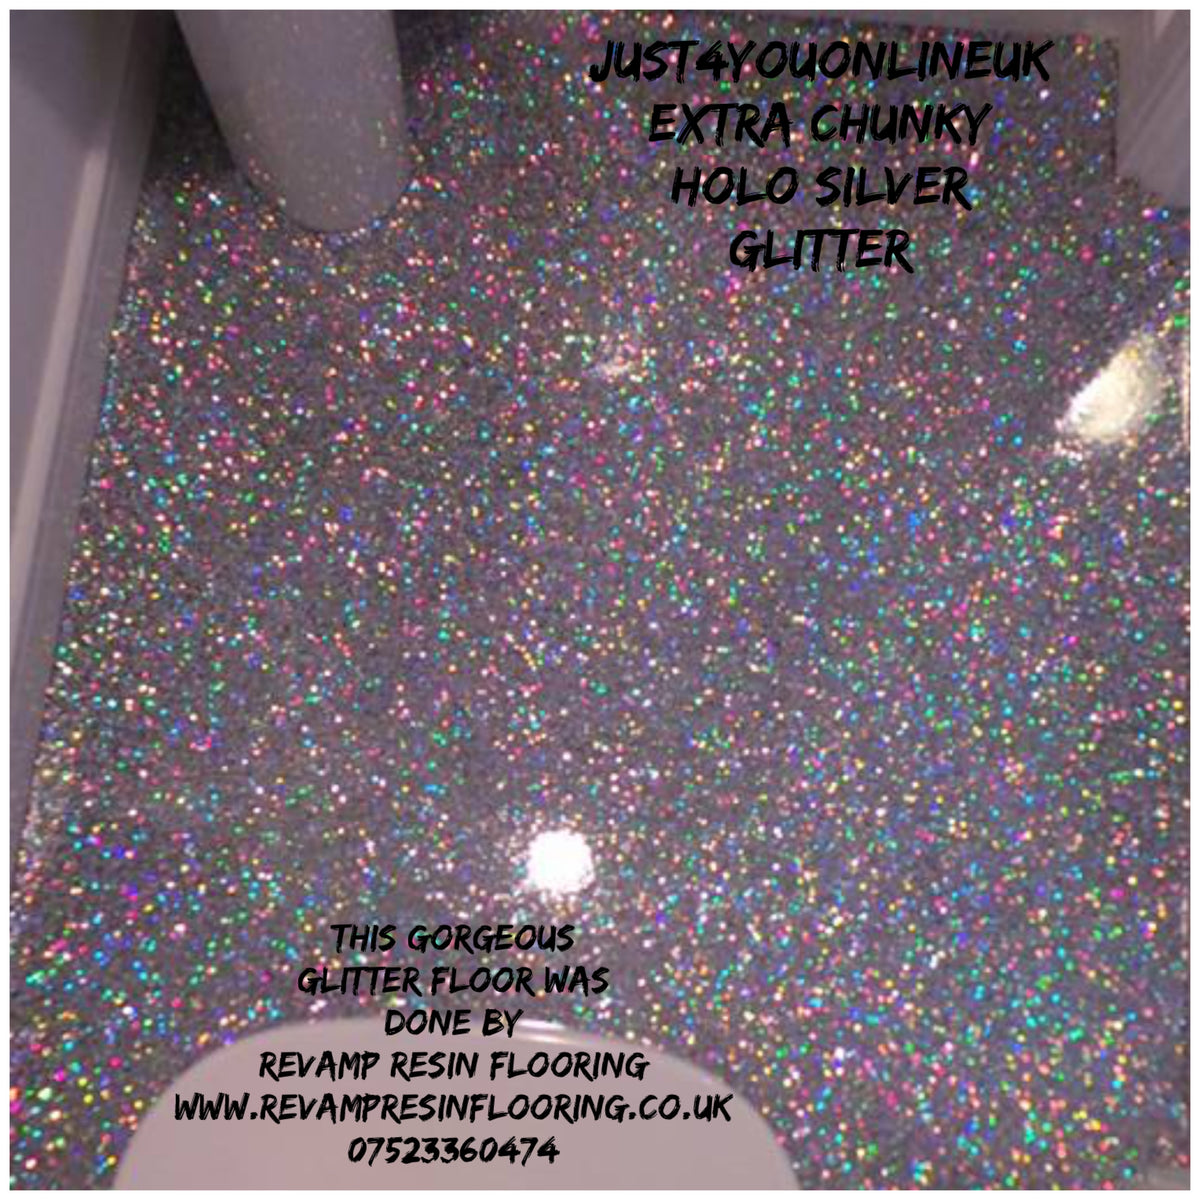 Chunky Holographic Silver Glitter Floor Flooring Home